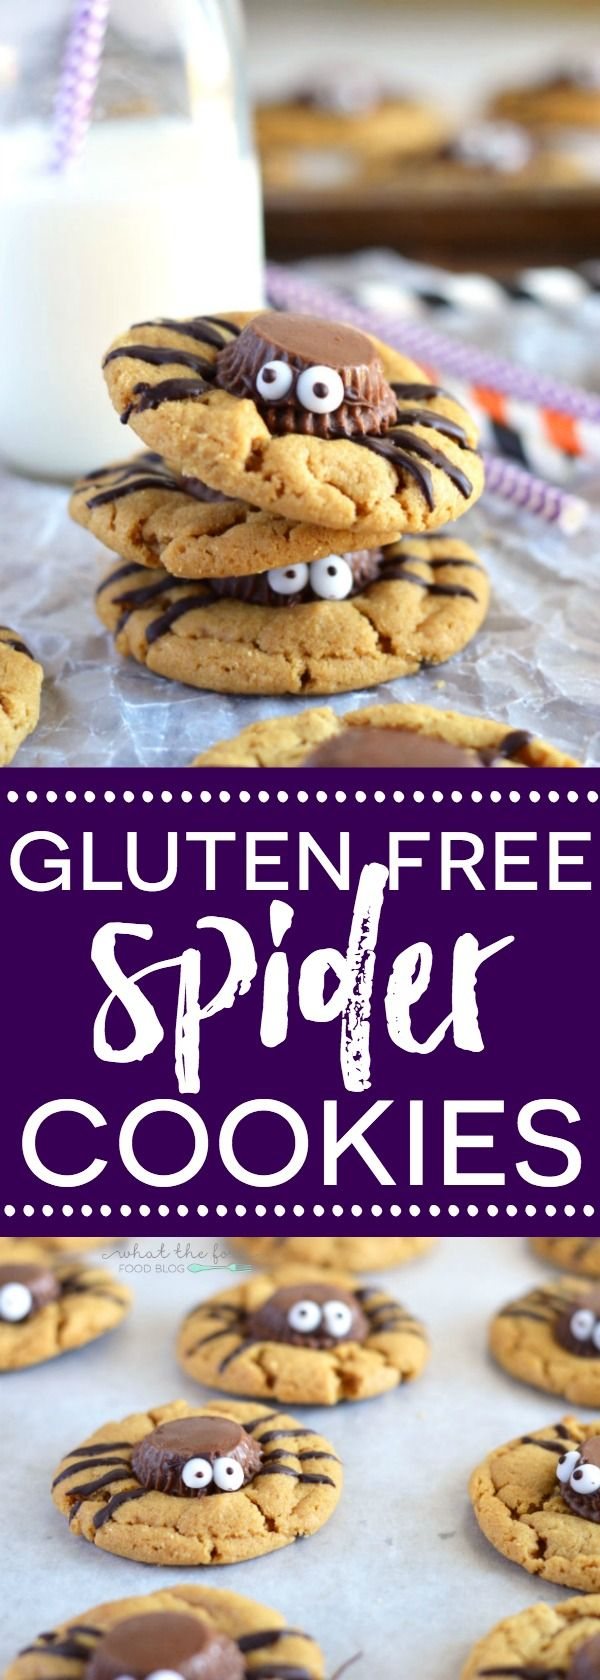 Gluten Free Spider Cookies - perfect for Halloween! Full of chocolate and peanut butter flavor, these cookies are sure to be a hit! Recipe from @whattheforkblog | whattheforkfoodblog.com